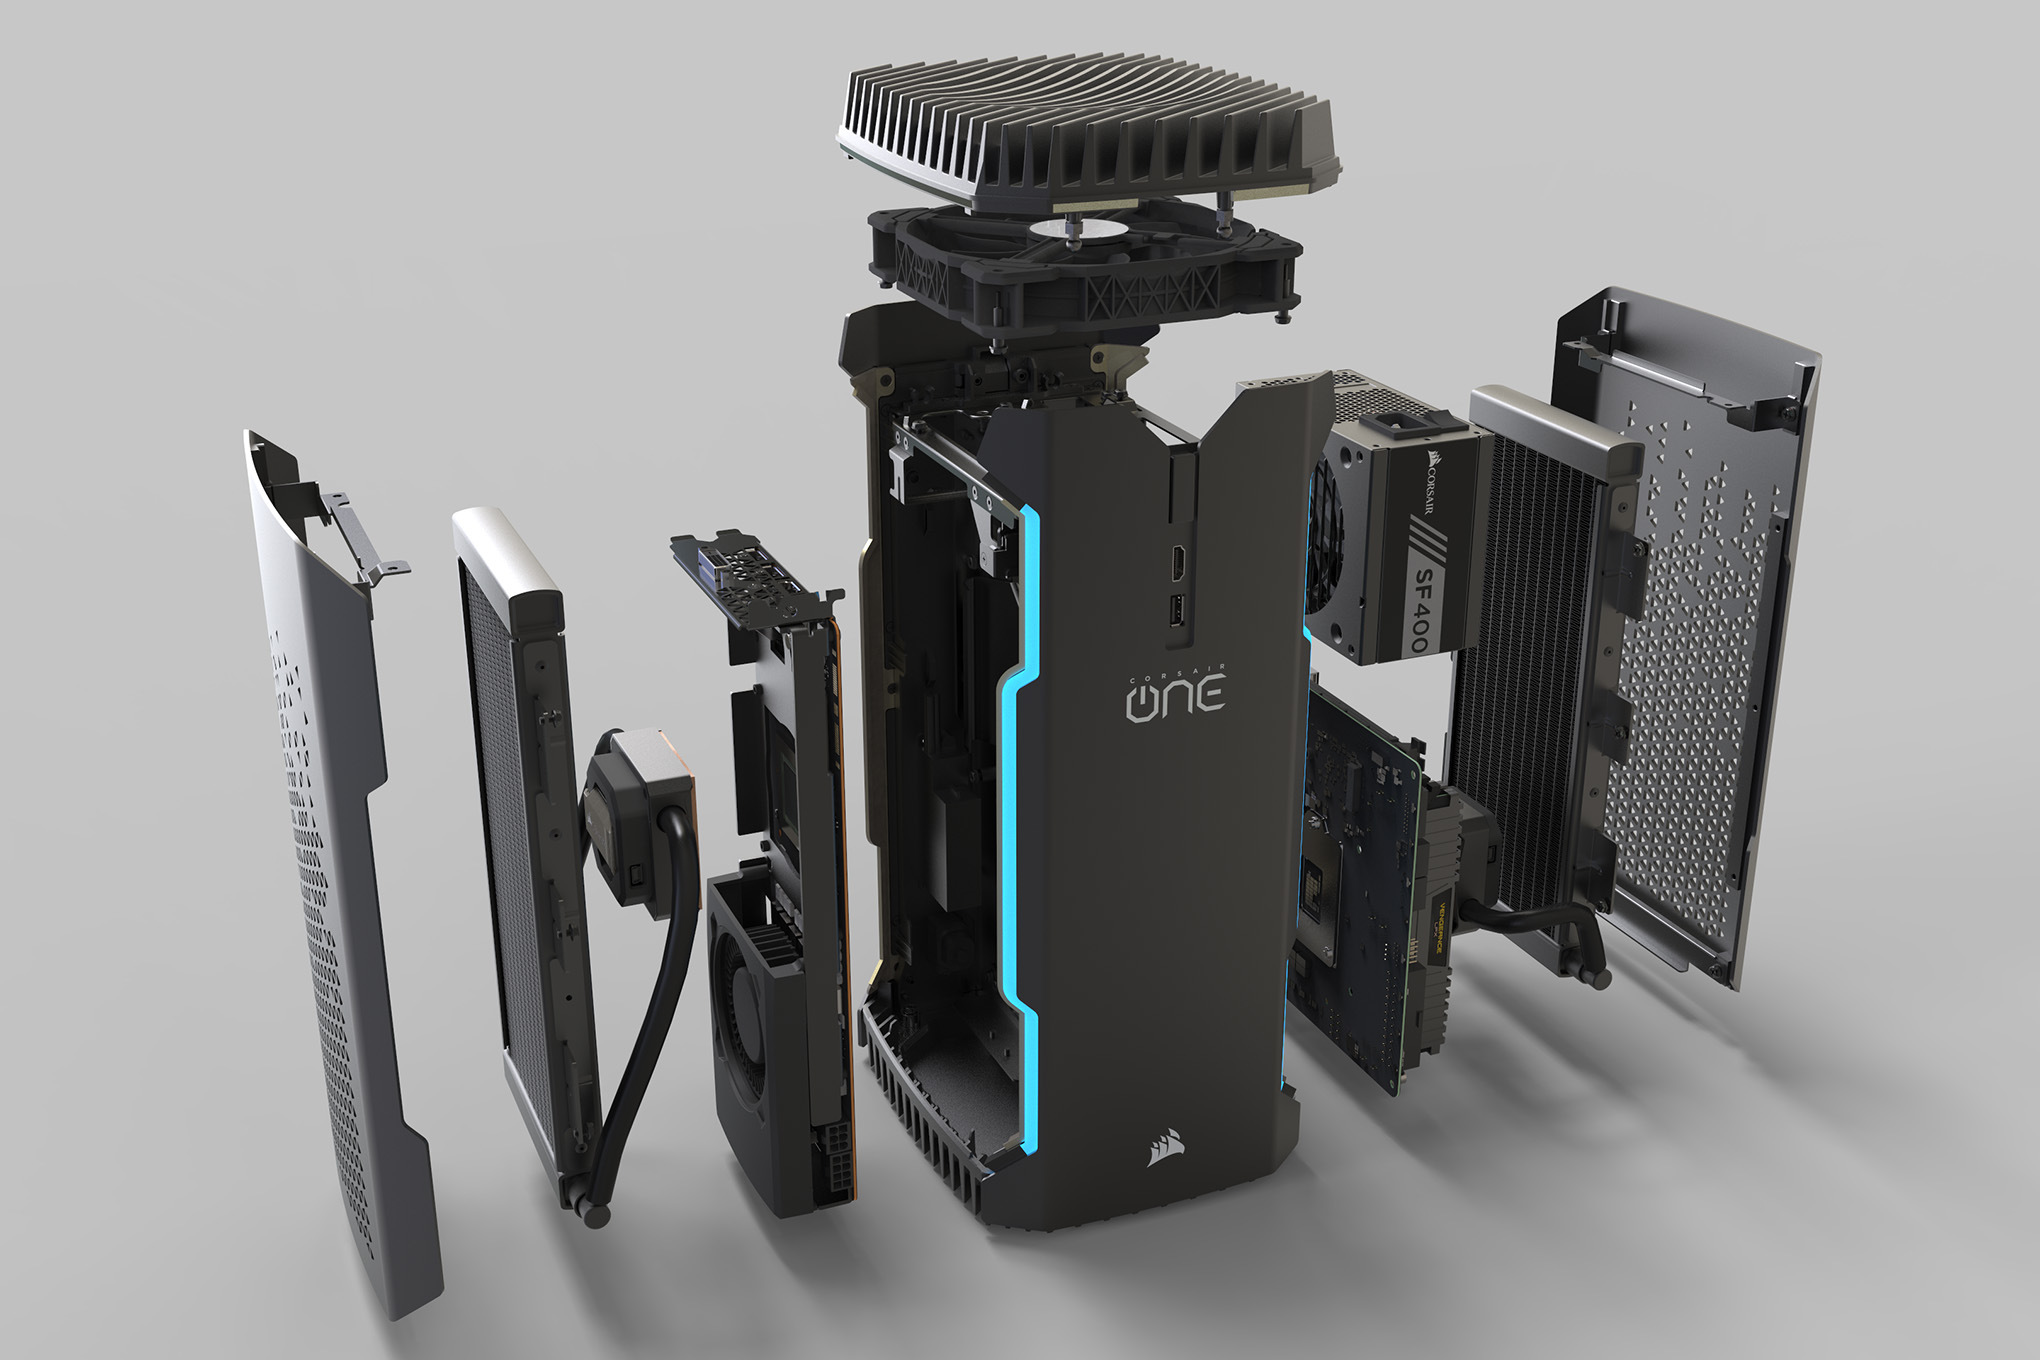 Child Wallpaper Hd Corsair One Review A Console Like Pc In The Age Of Pc